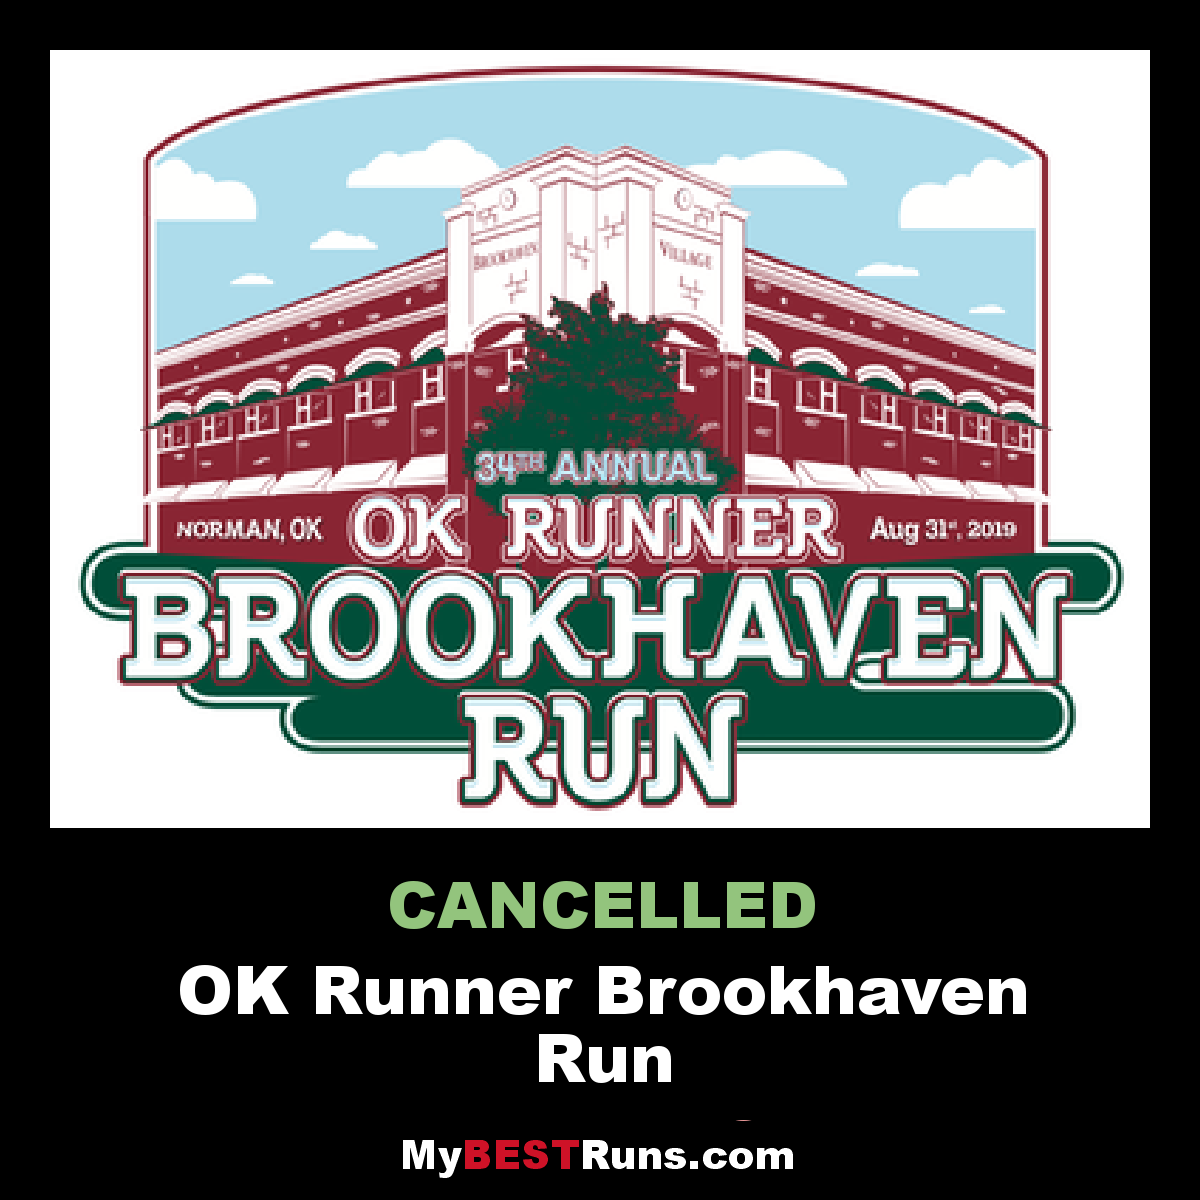 OK RUNNER BROOKHAVEN RUN